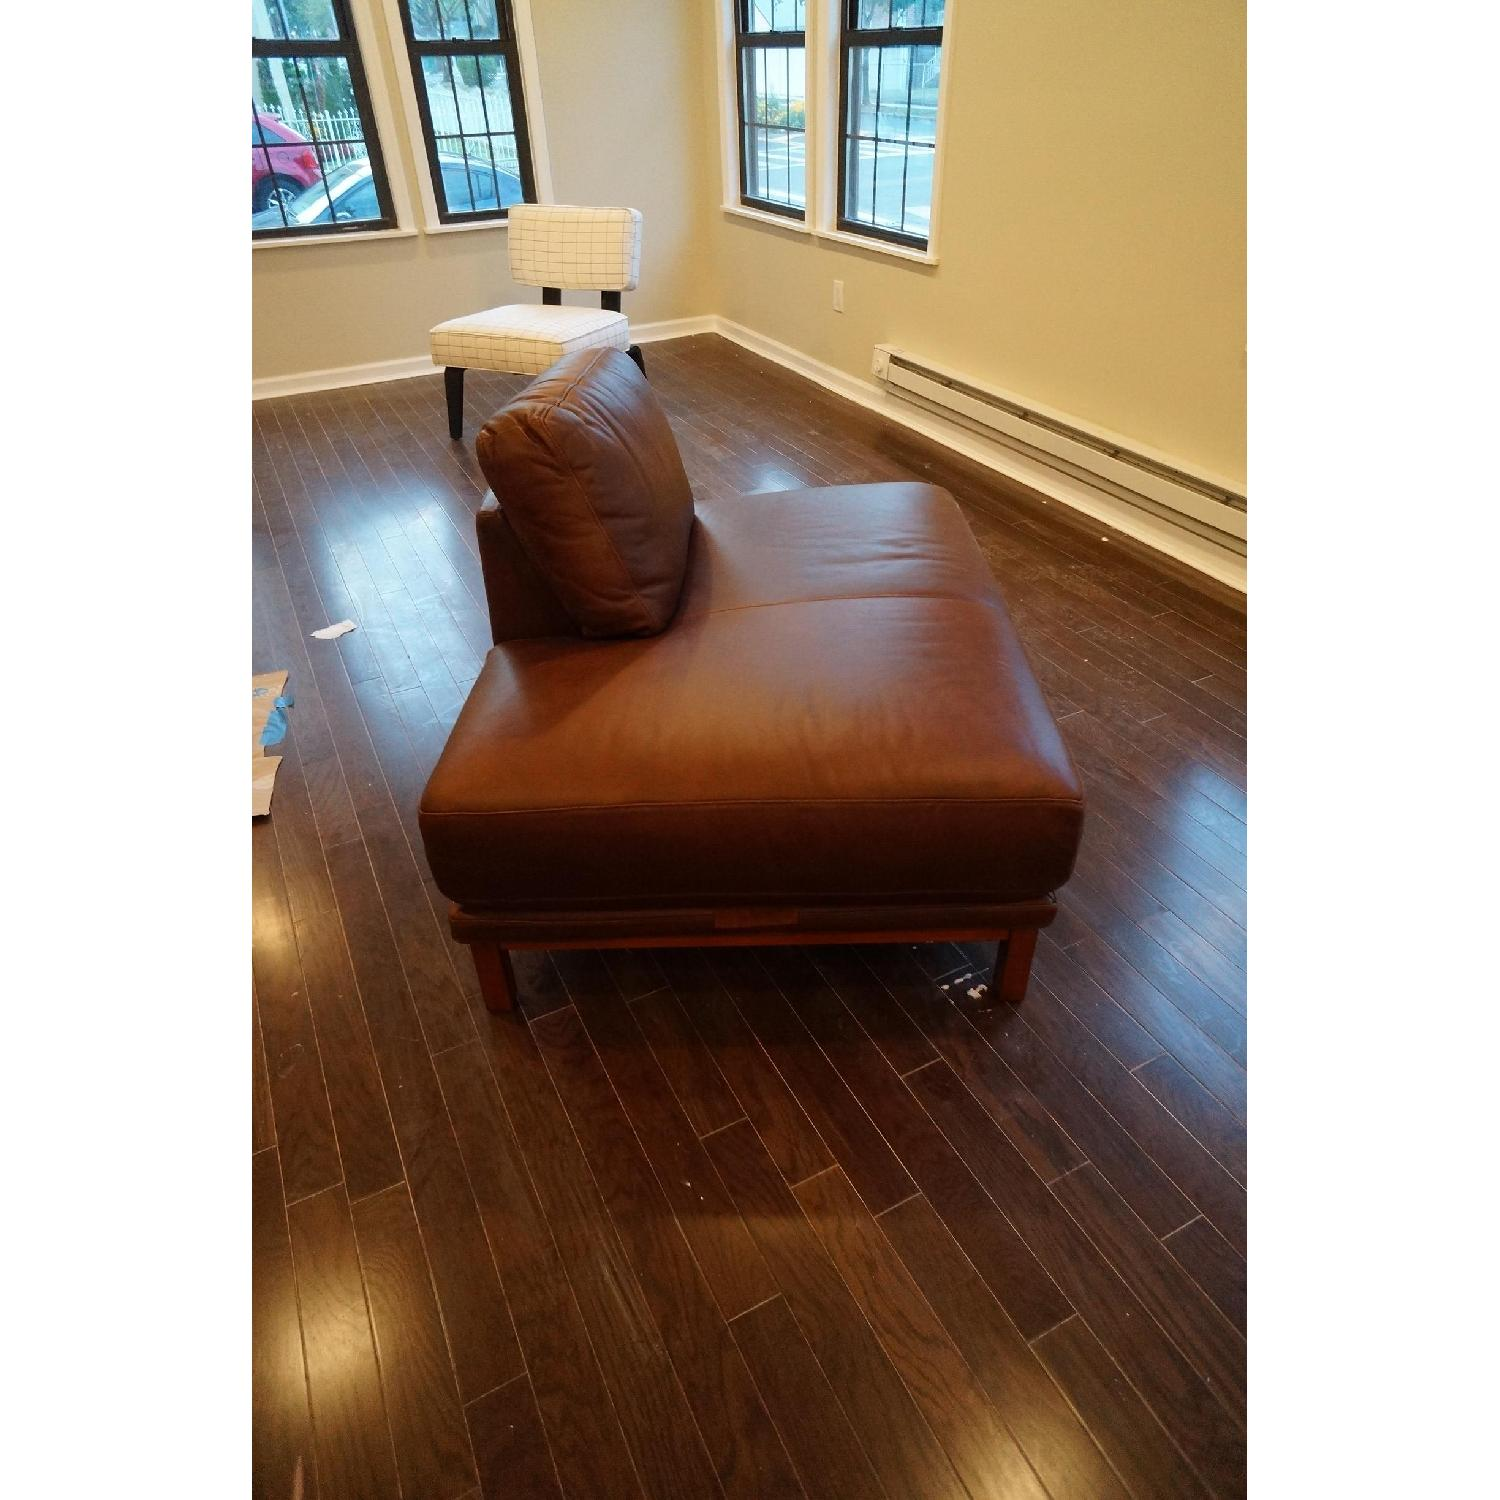 West Brown Leather Chaise Lounge Chair - image-5